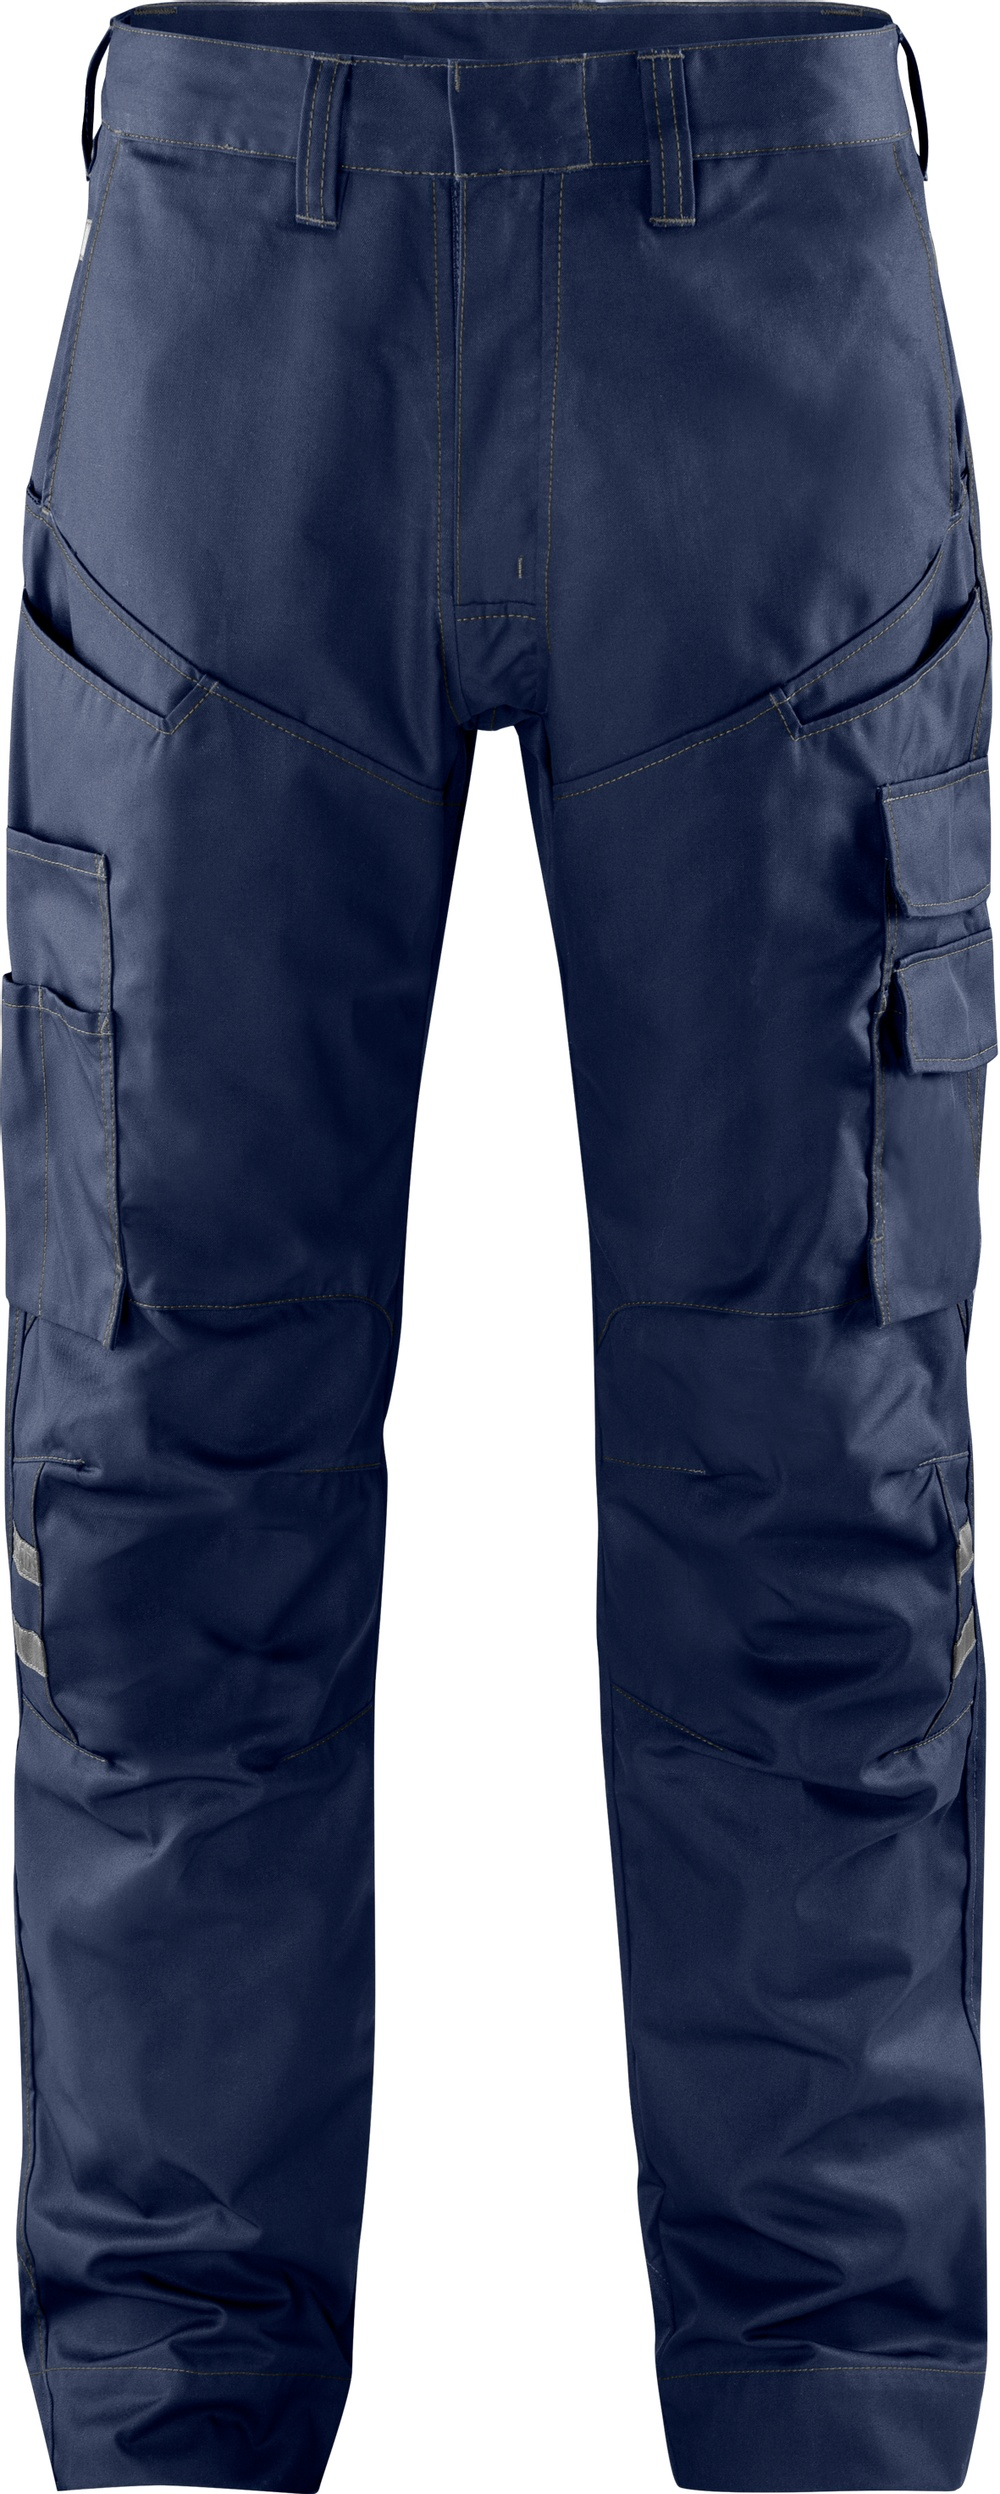 Fristads Green Fusion trousers have nearly half of the climate impact compared with conventionally produced trousers.